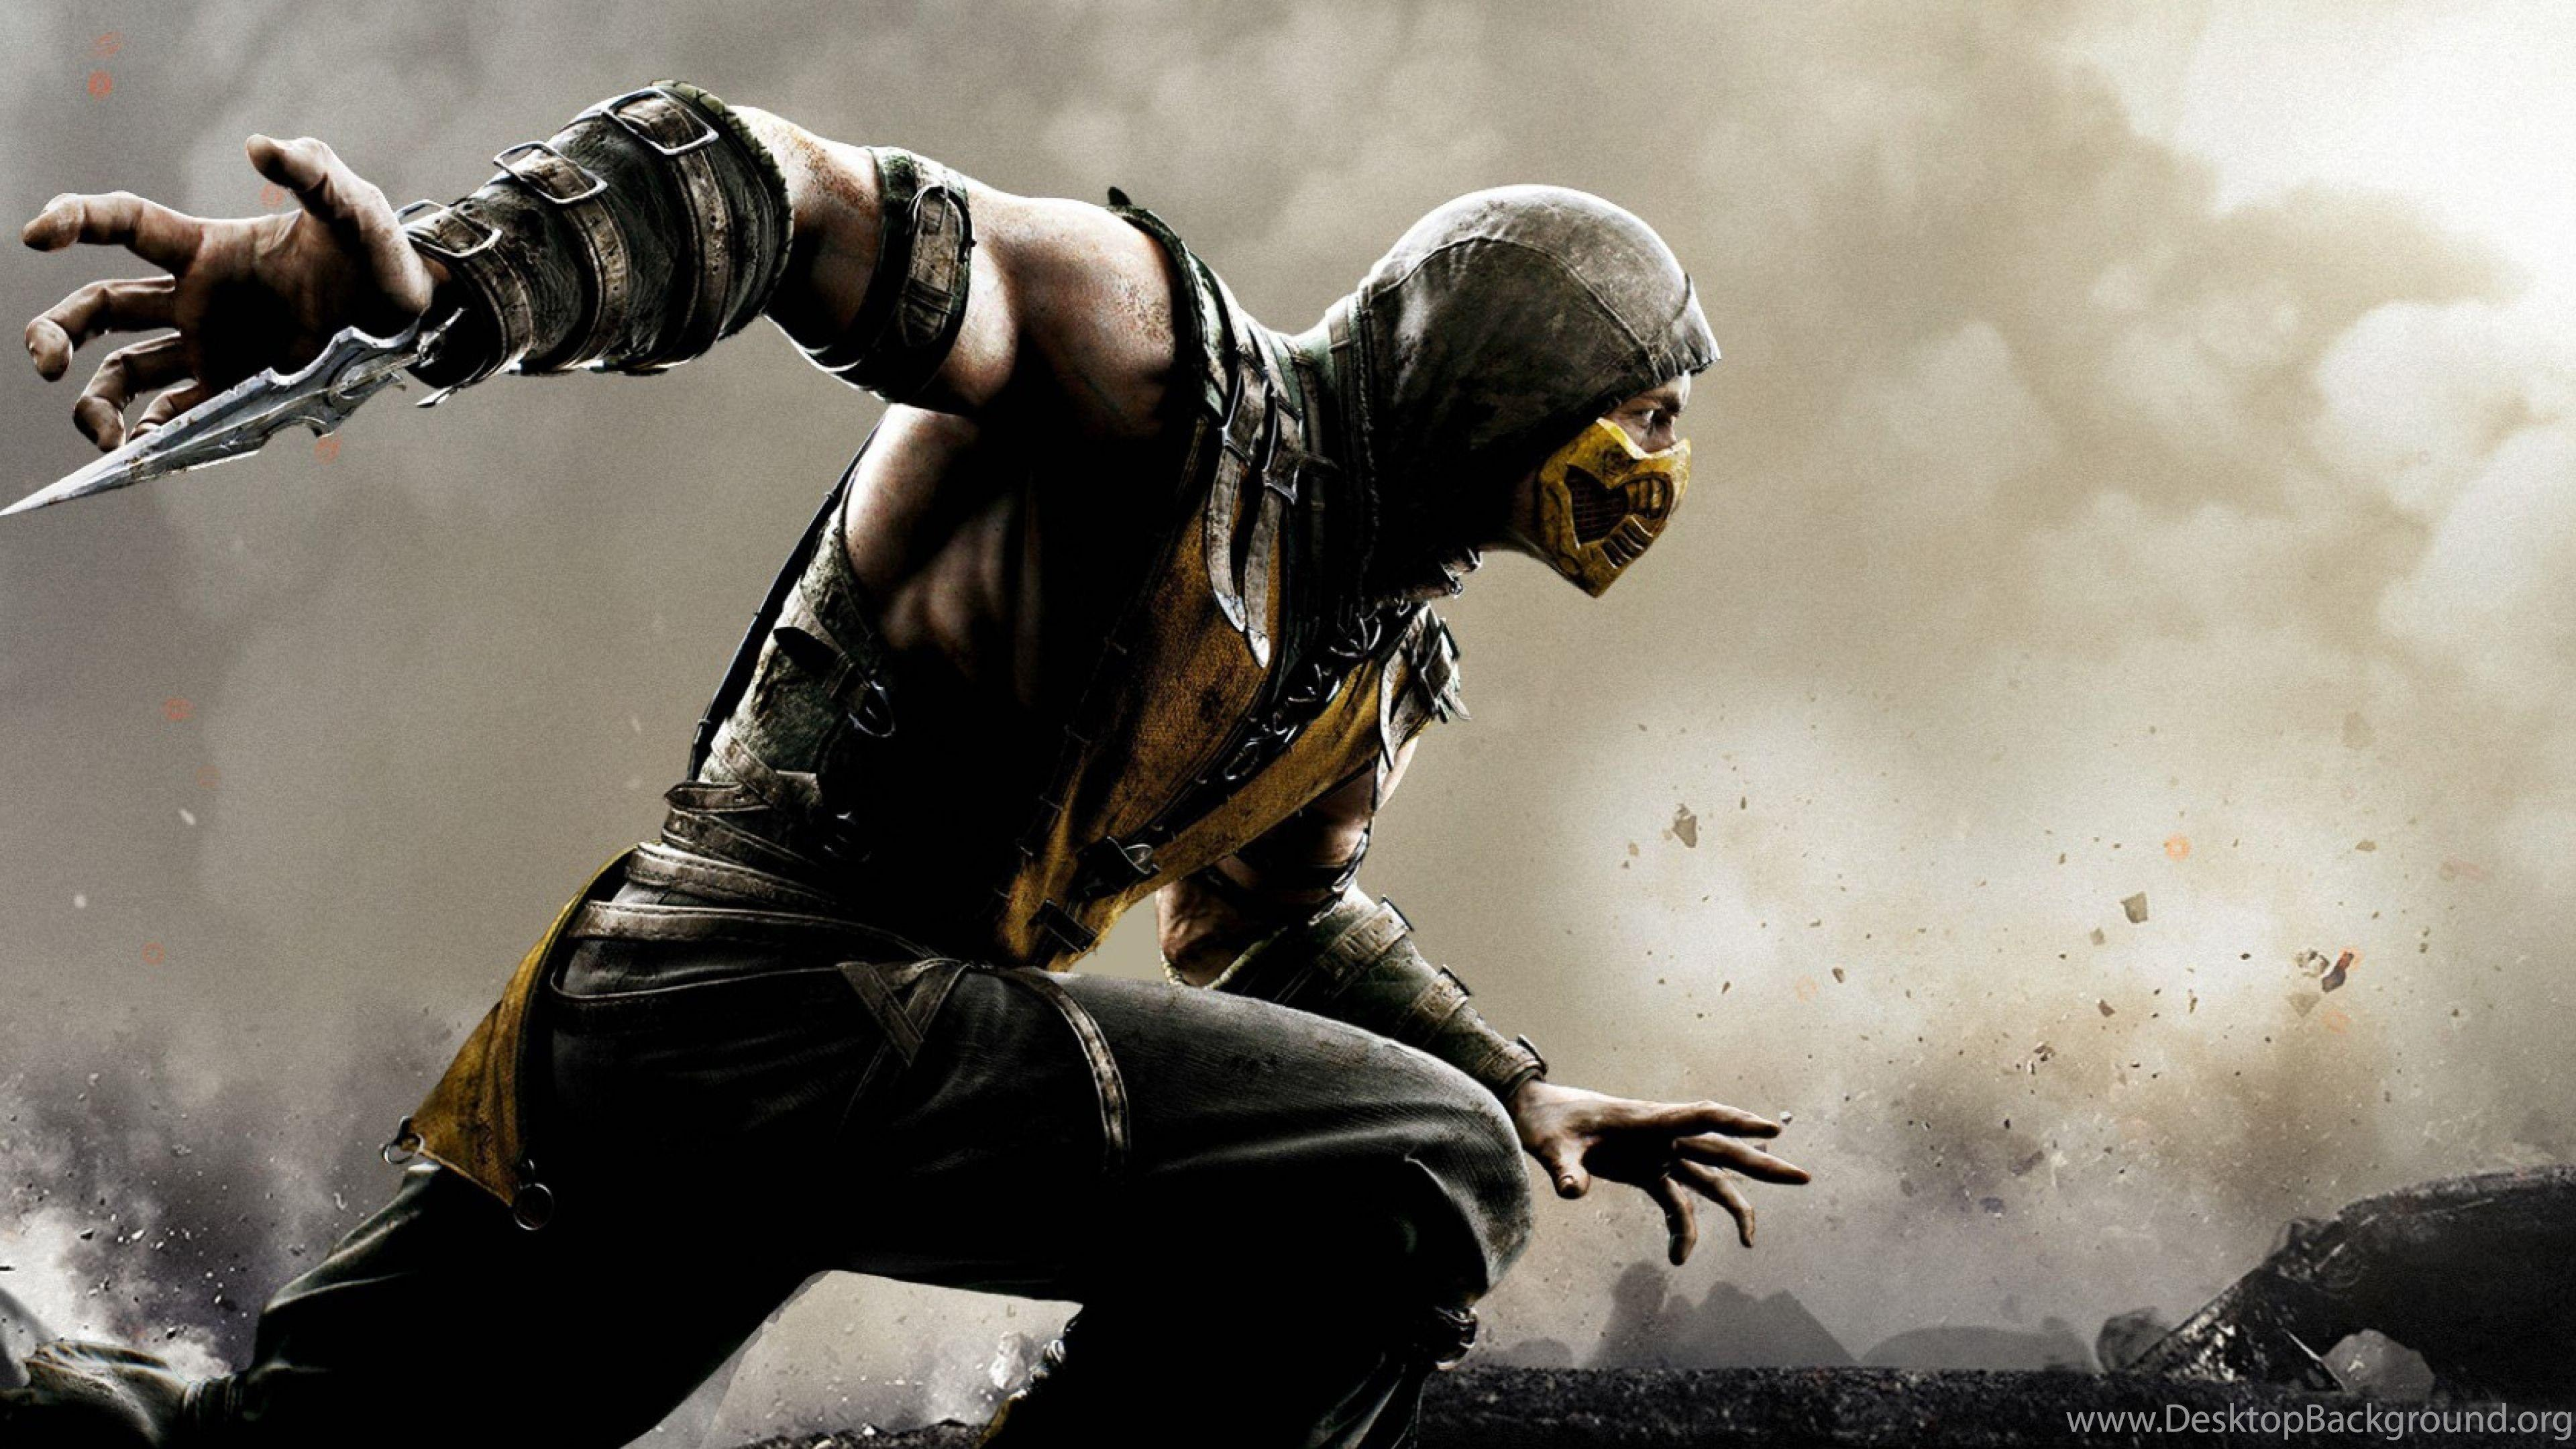 HD Backgrounds Mortal Kombat X Scorpion Wallpapers Desktop Backgrounds